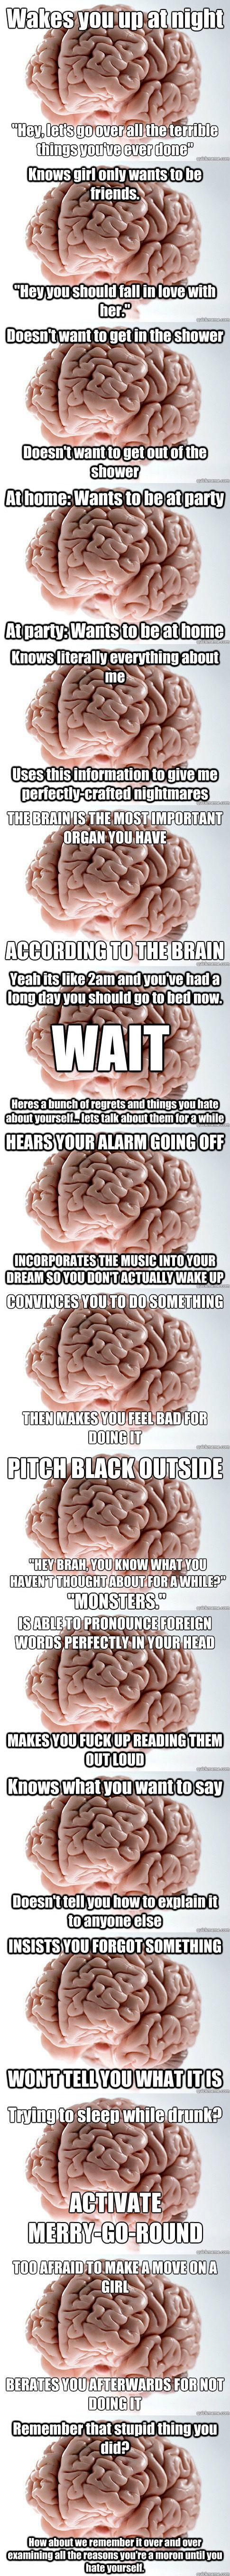 Why you do this brain